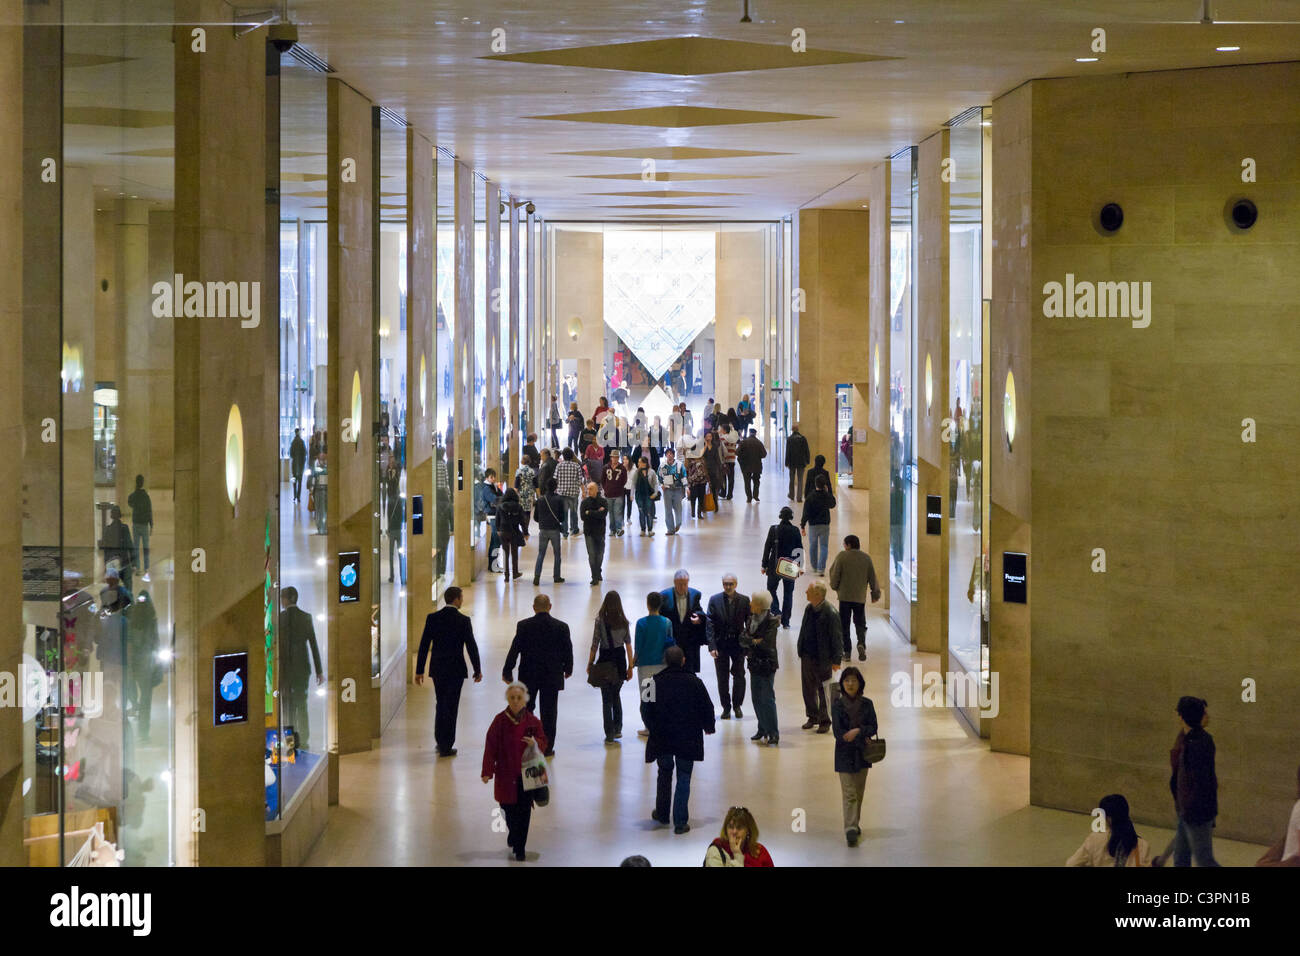 The Carrousel du Louvre shopping centre, Paris, France - Stock Image